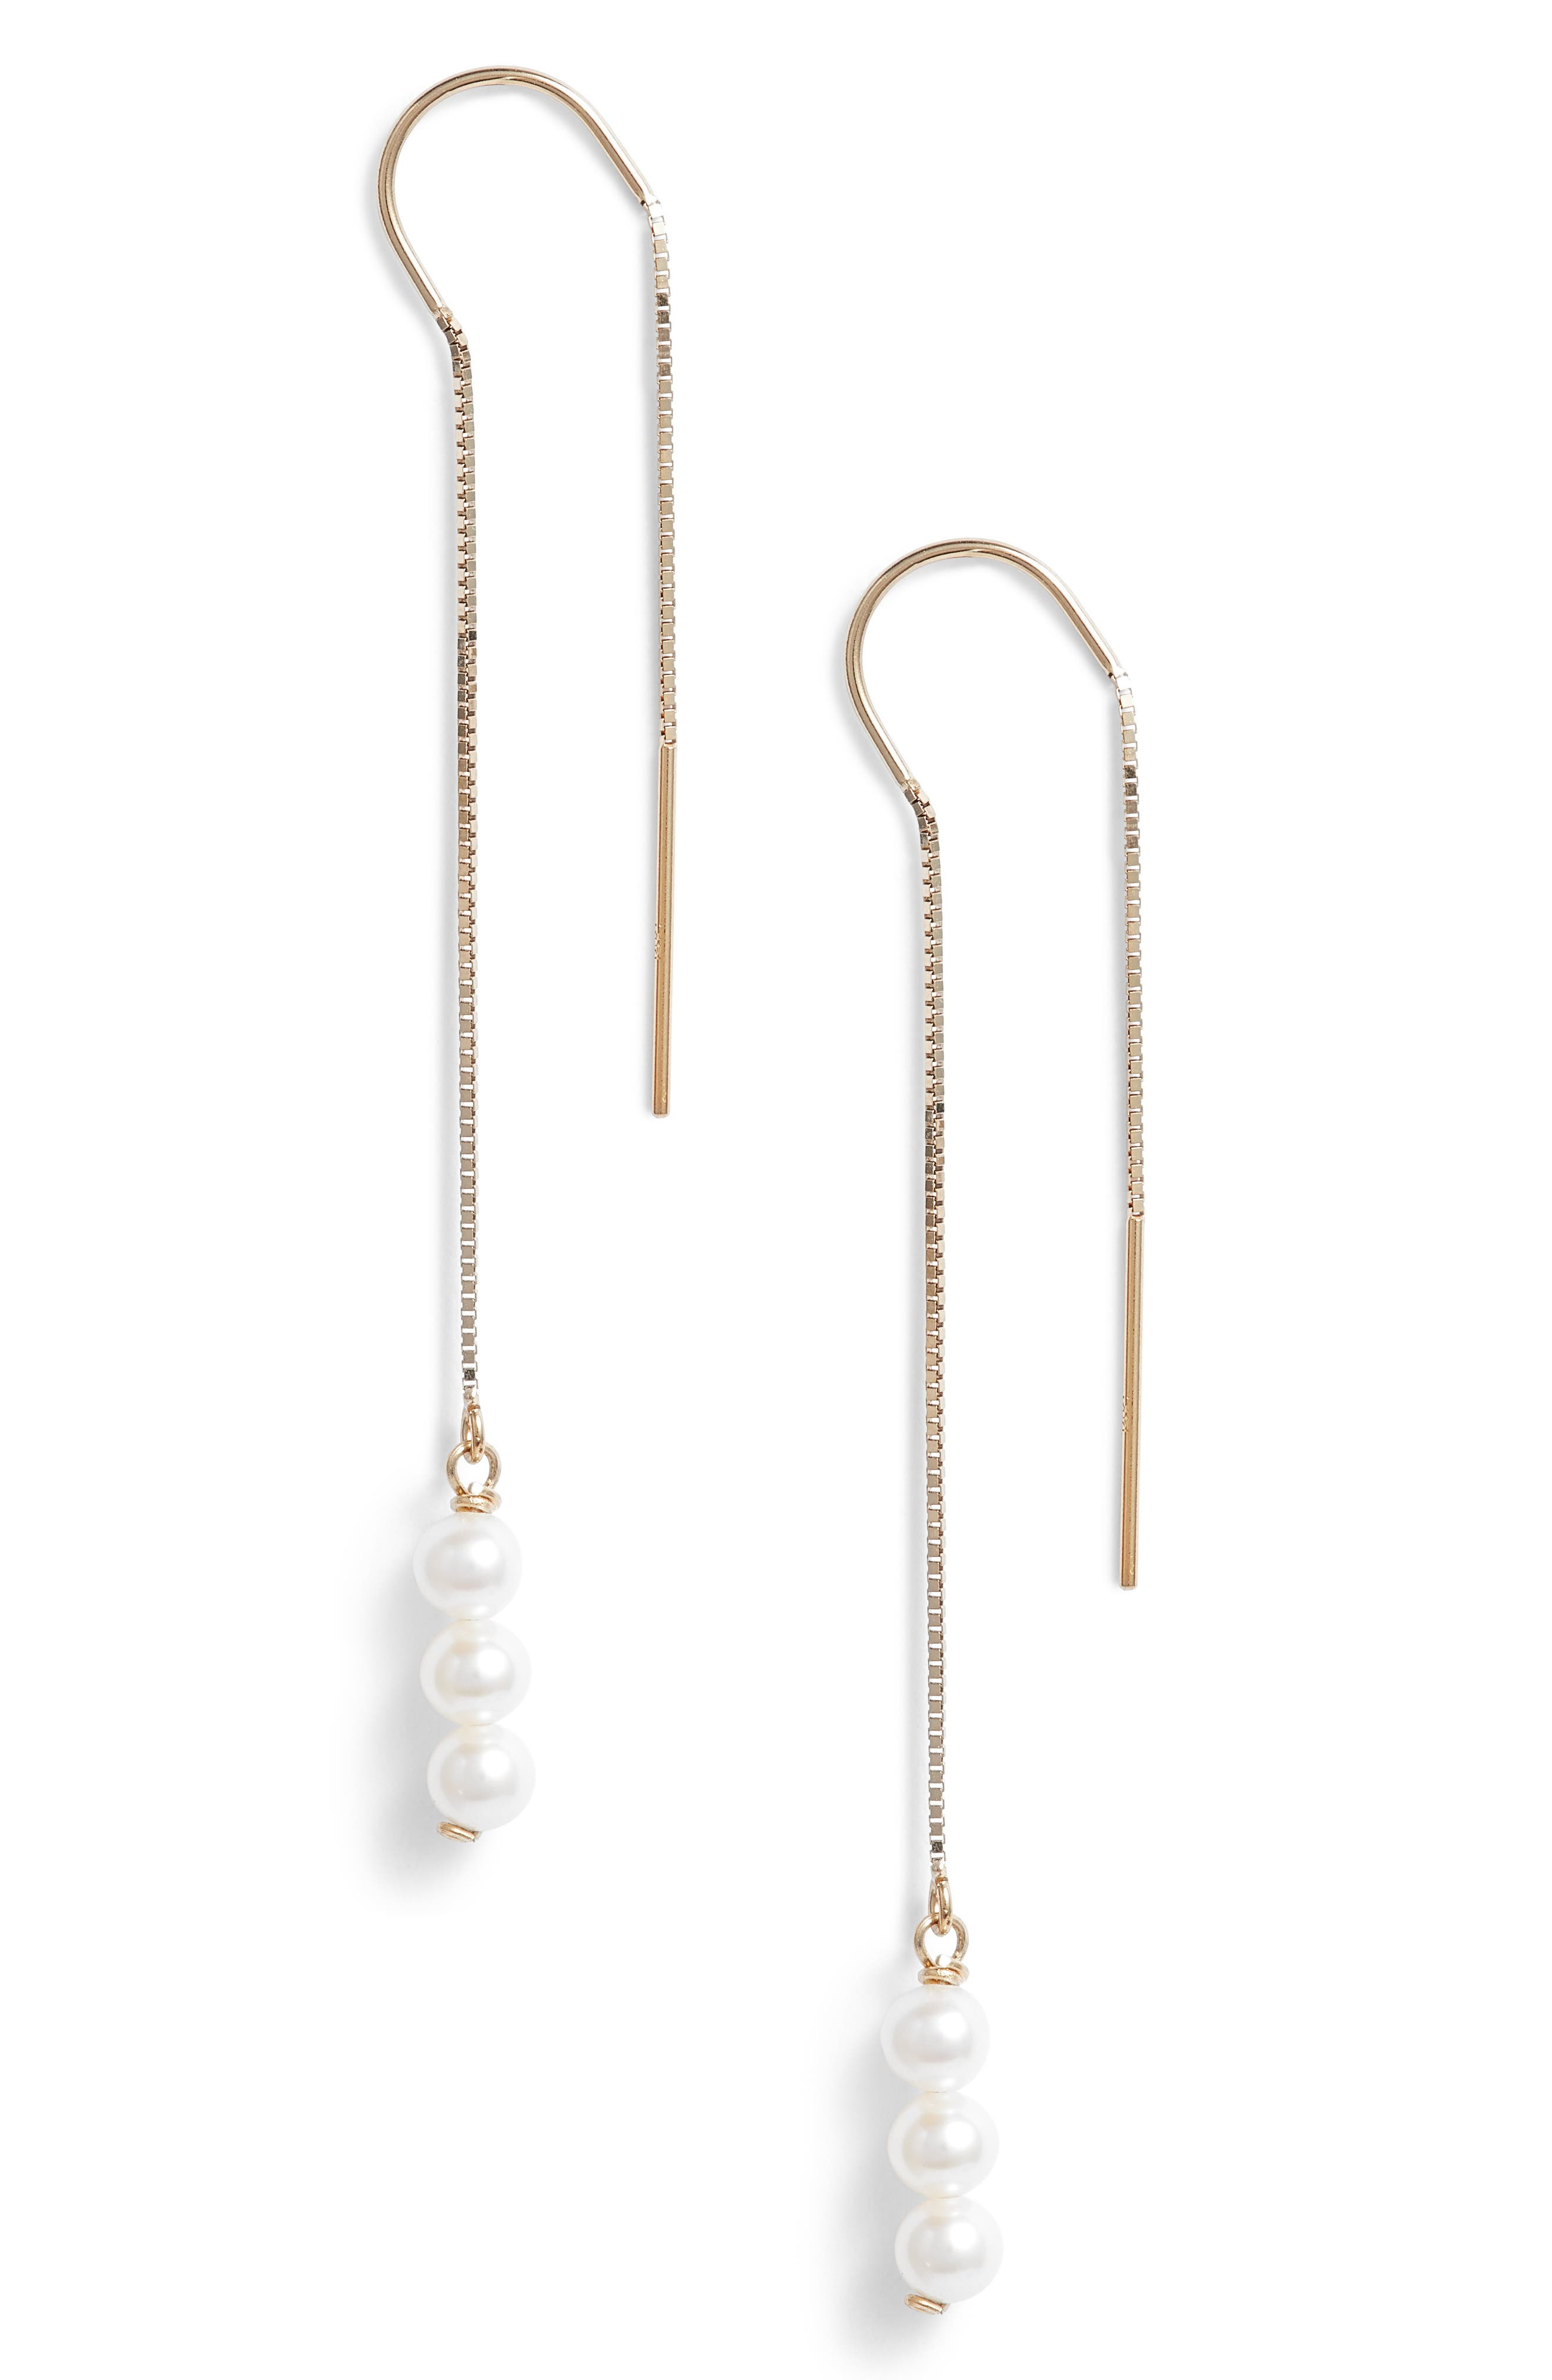 Triple Baby Pearl Threader Earrings,                         Main,                         color, Yellow Gold/ White Pearl